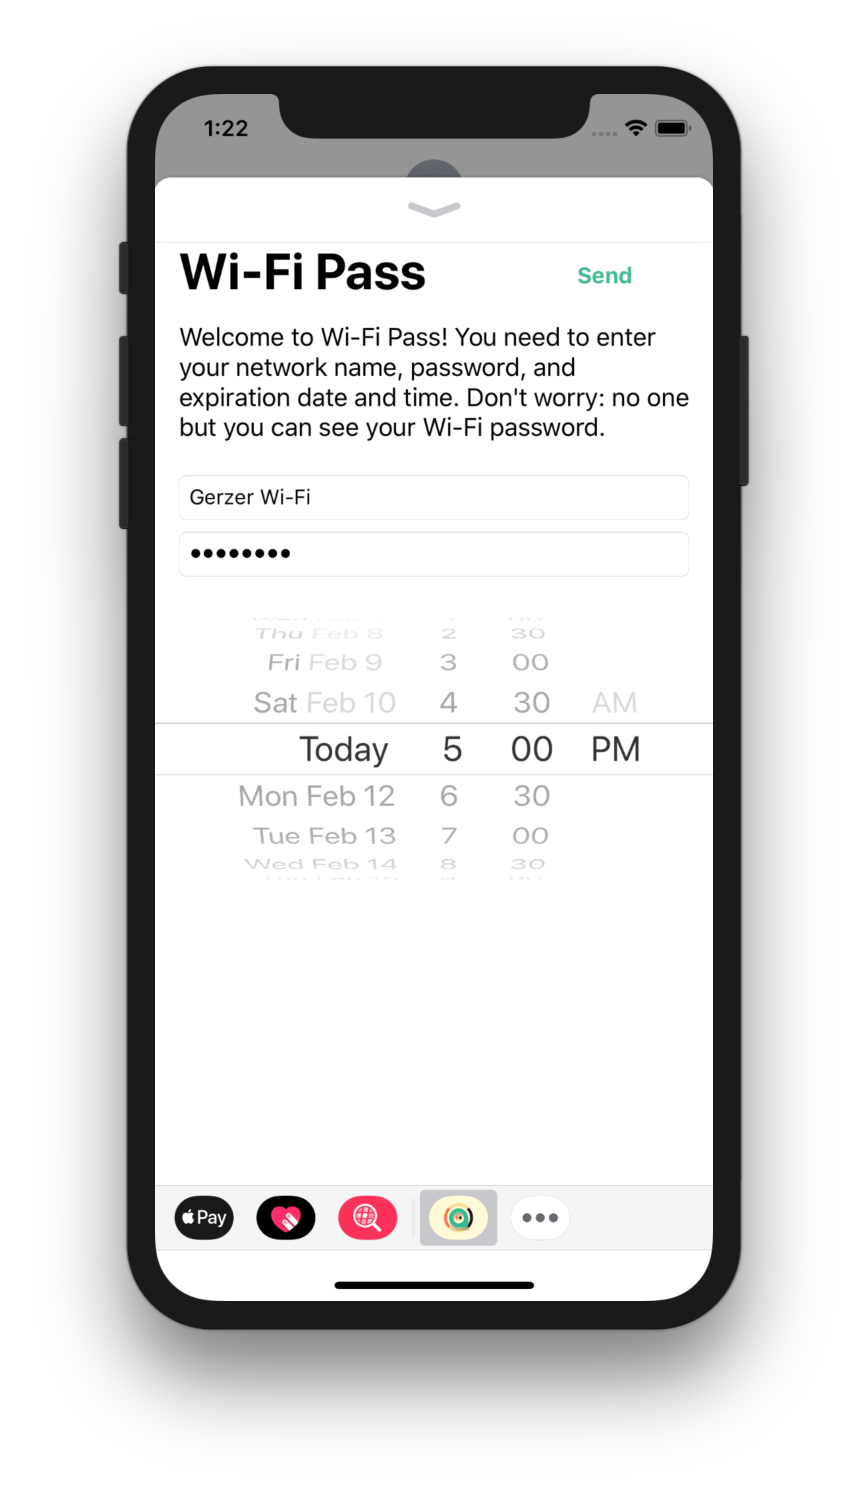 Screenshot 1 of Wi-Fi Pass for iMessage on iPhone X